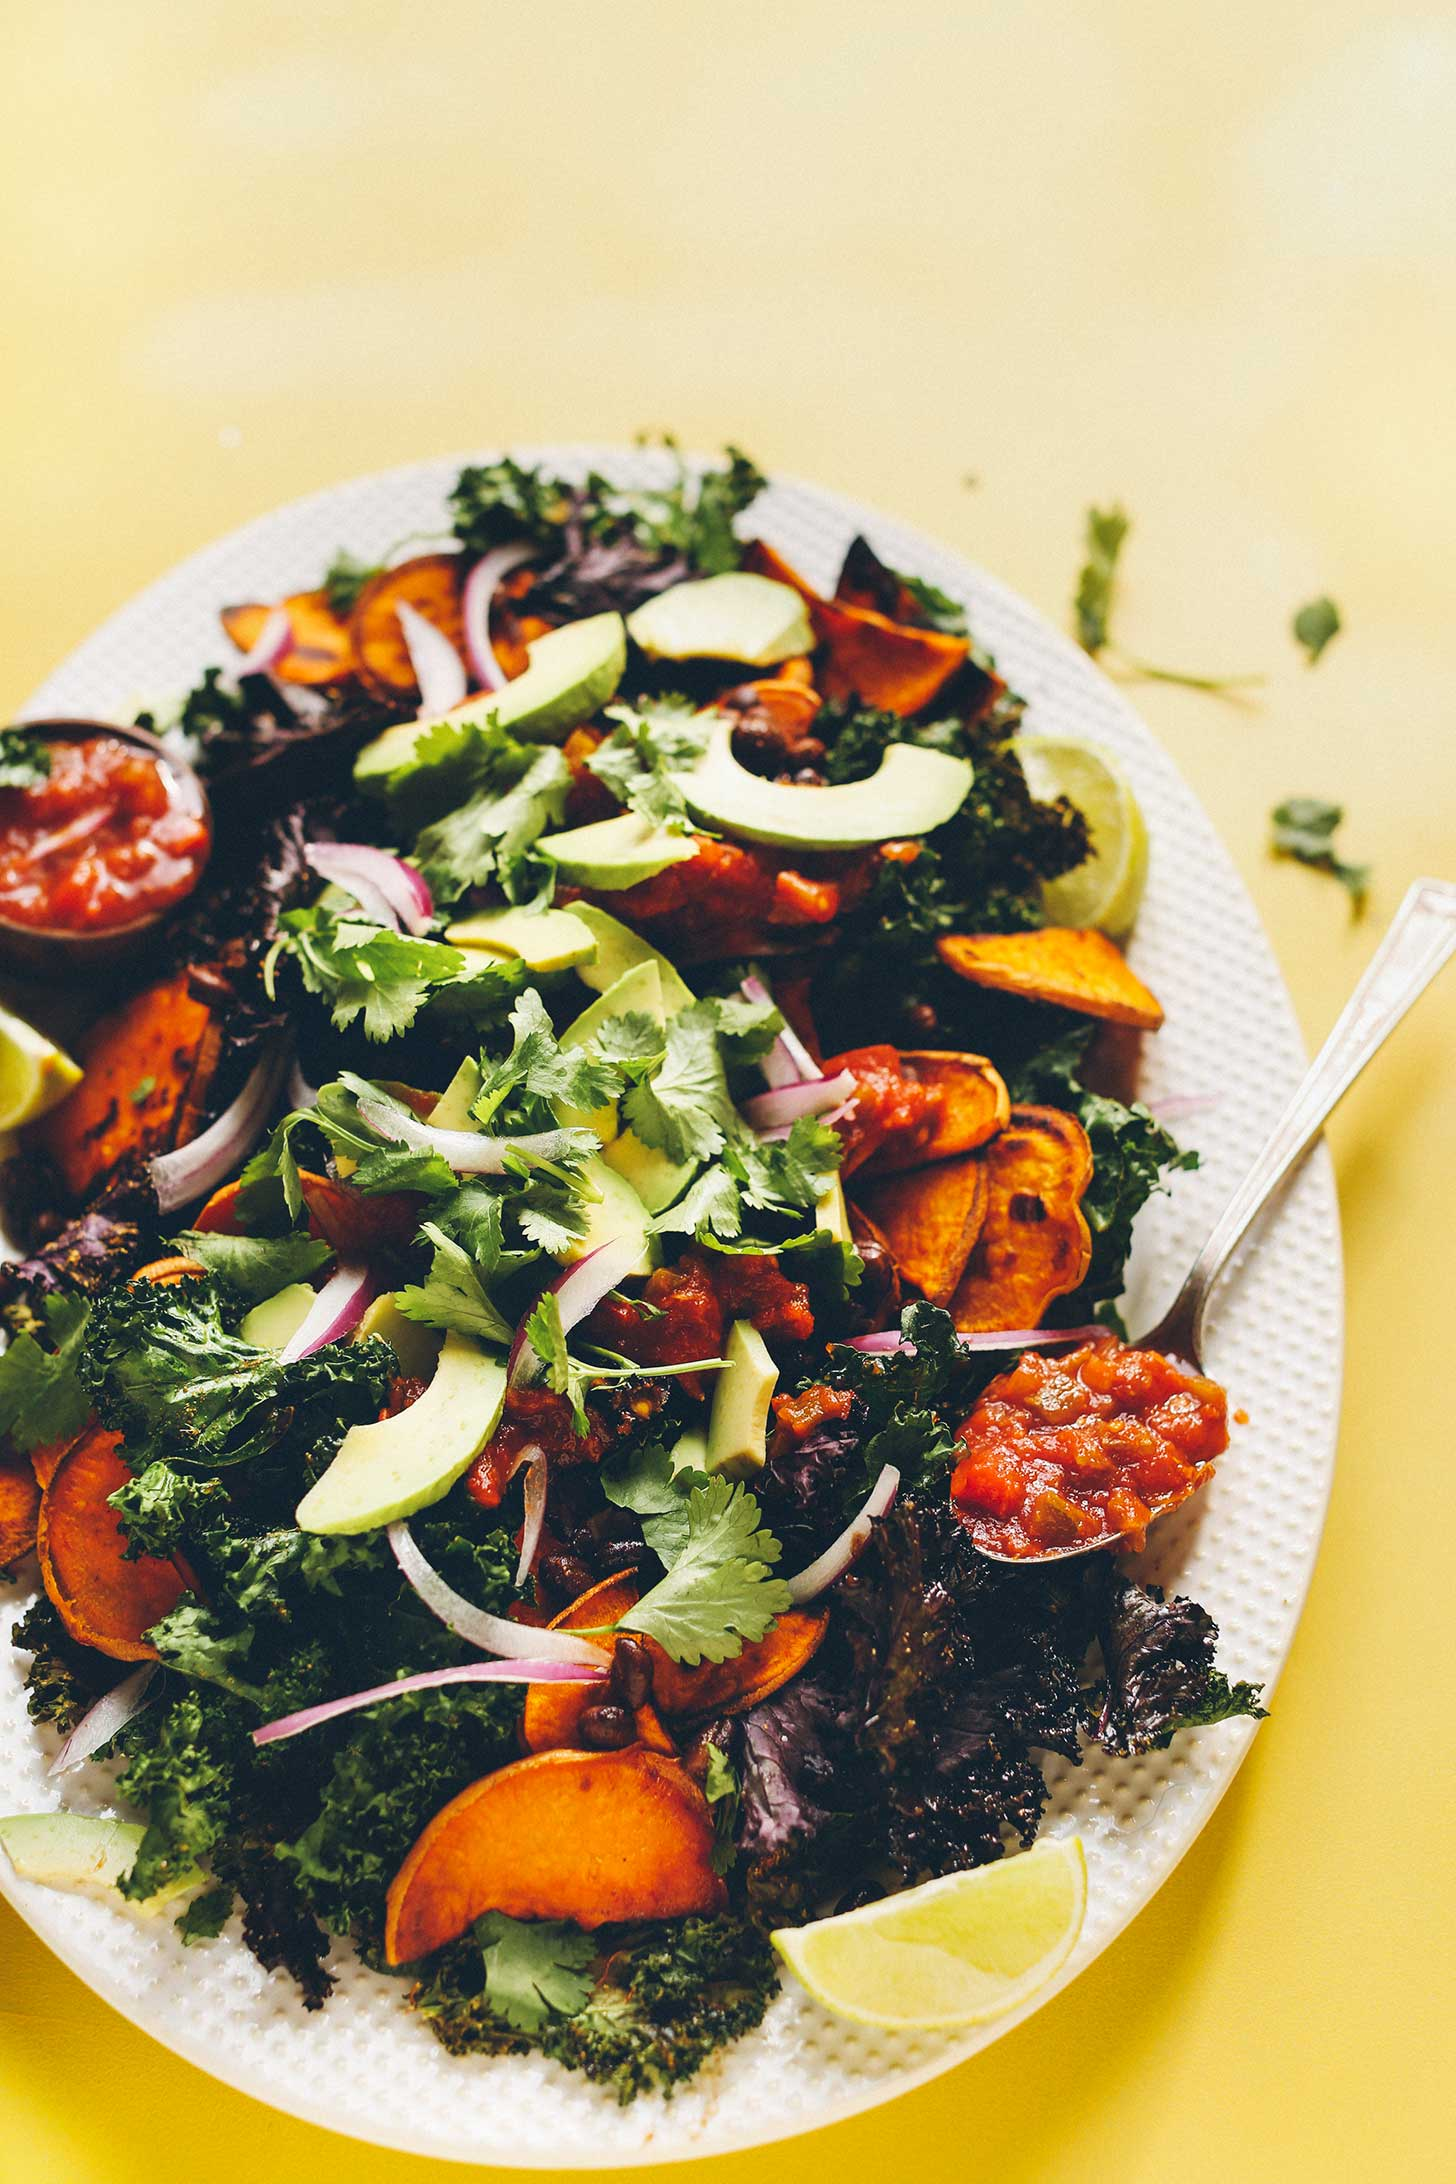 Big plate of plant-based Kale Nachos with Black Beans, Sweet Potatoes, Avocado, and salsa